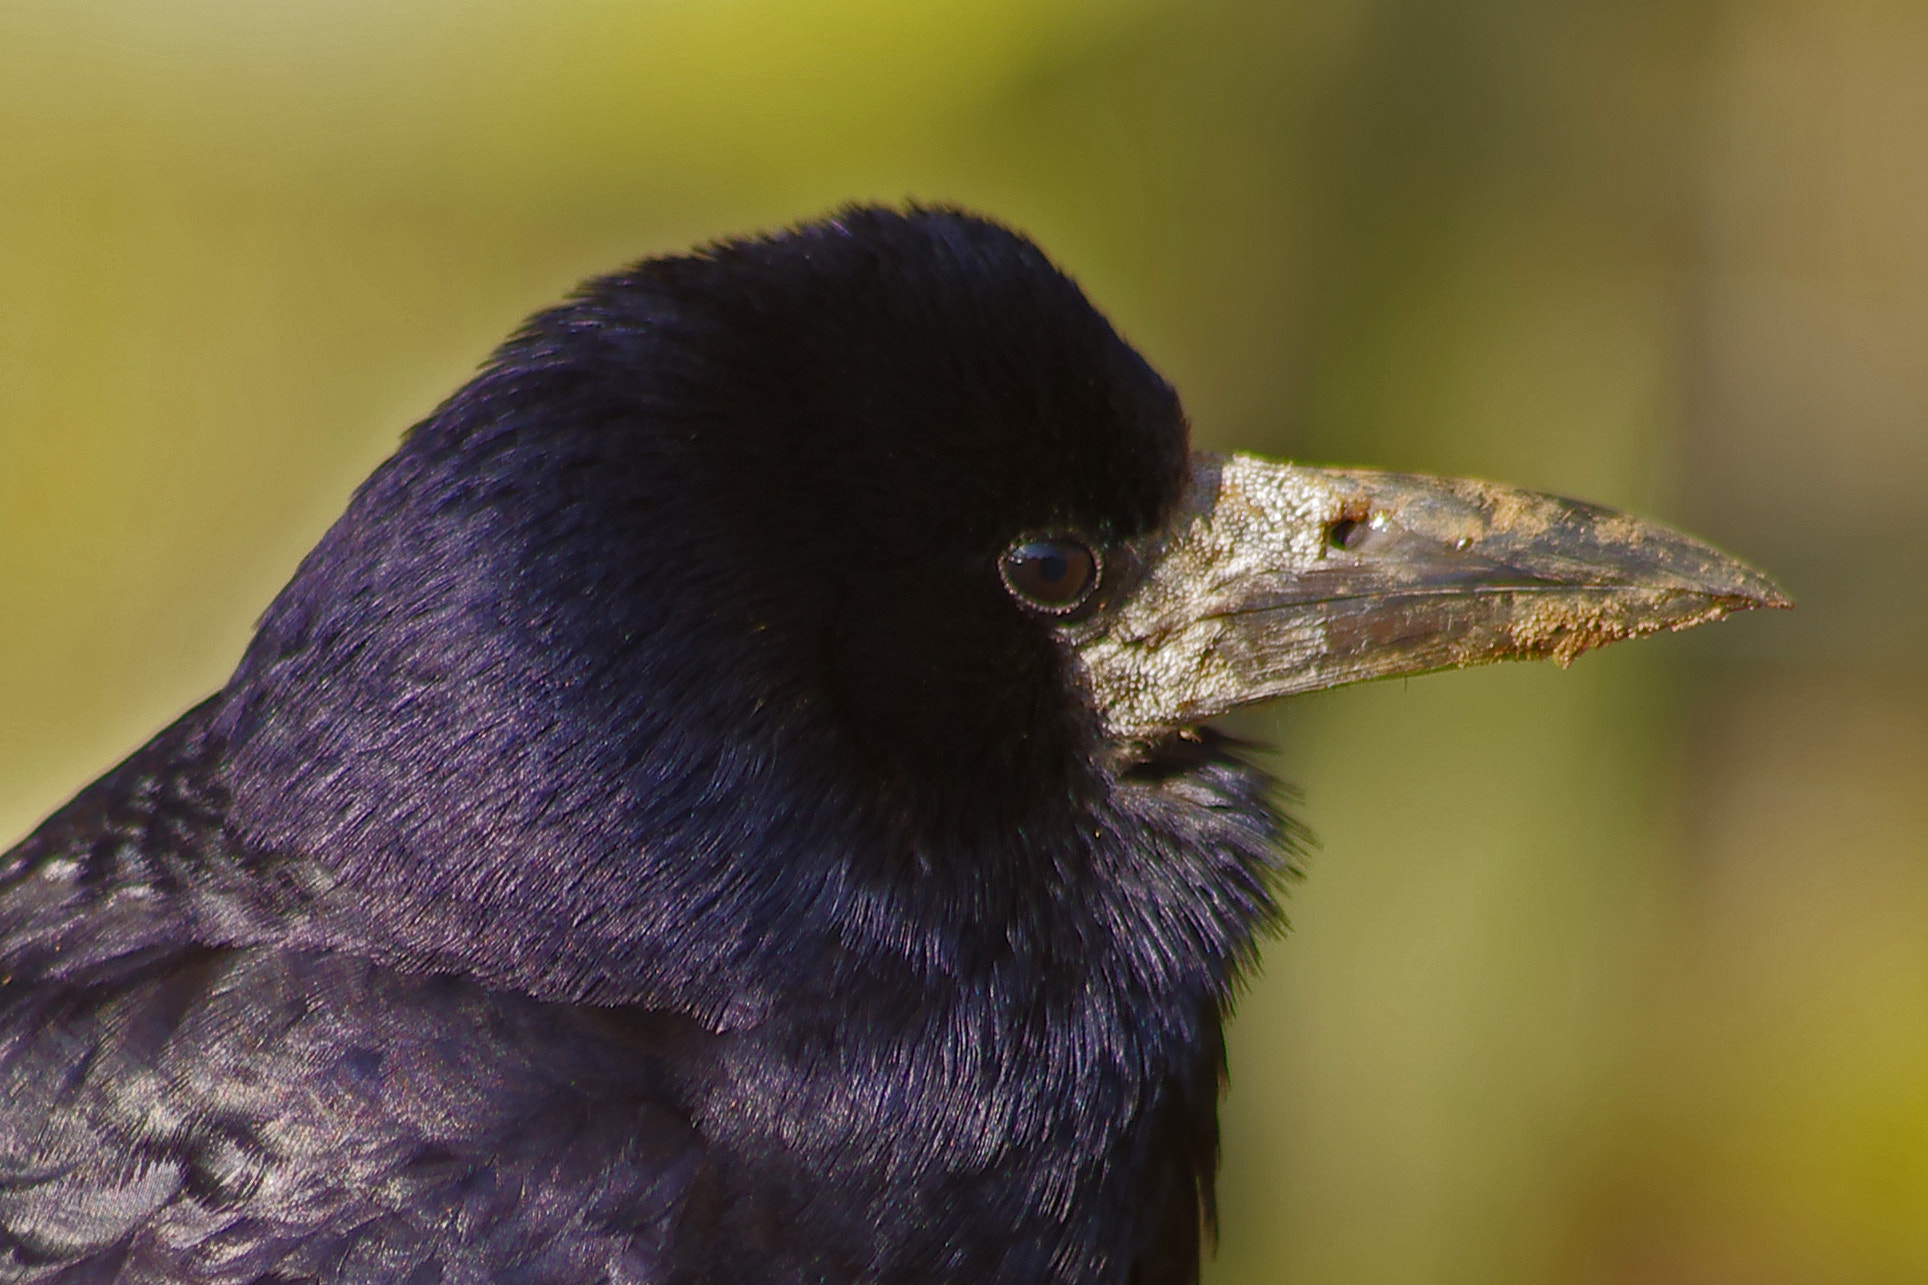 Photograph The Crow by Lee Ashman on 500px